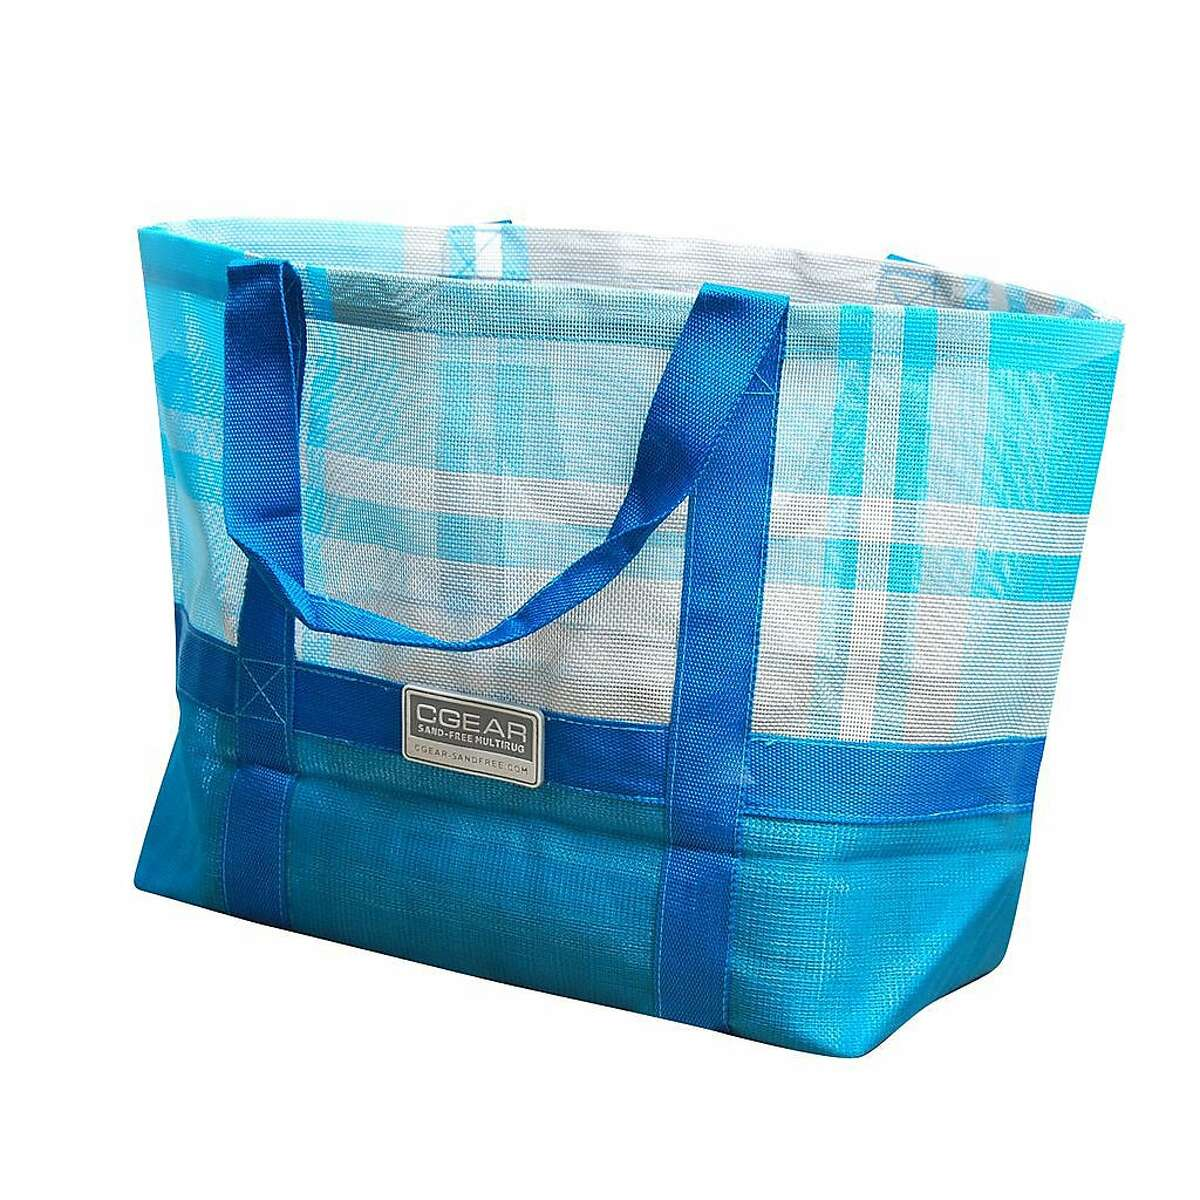 CGear Sand-Free's other products include this beach totes ($29.99).